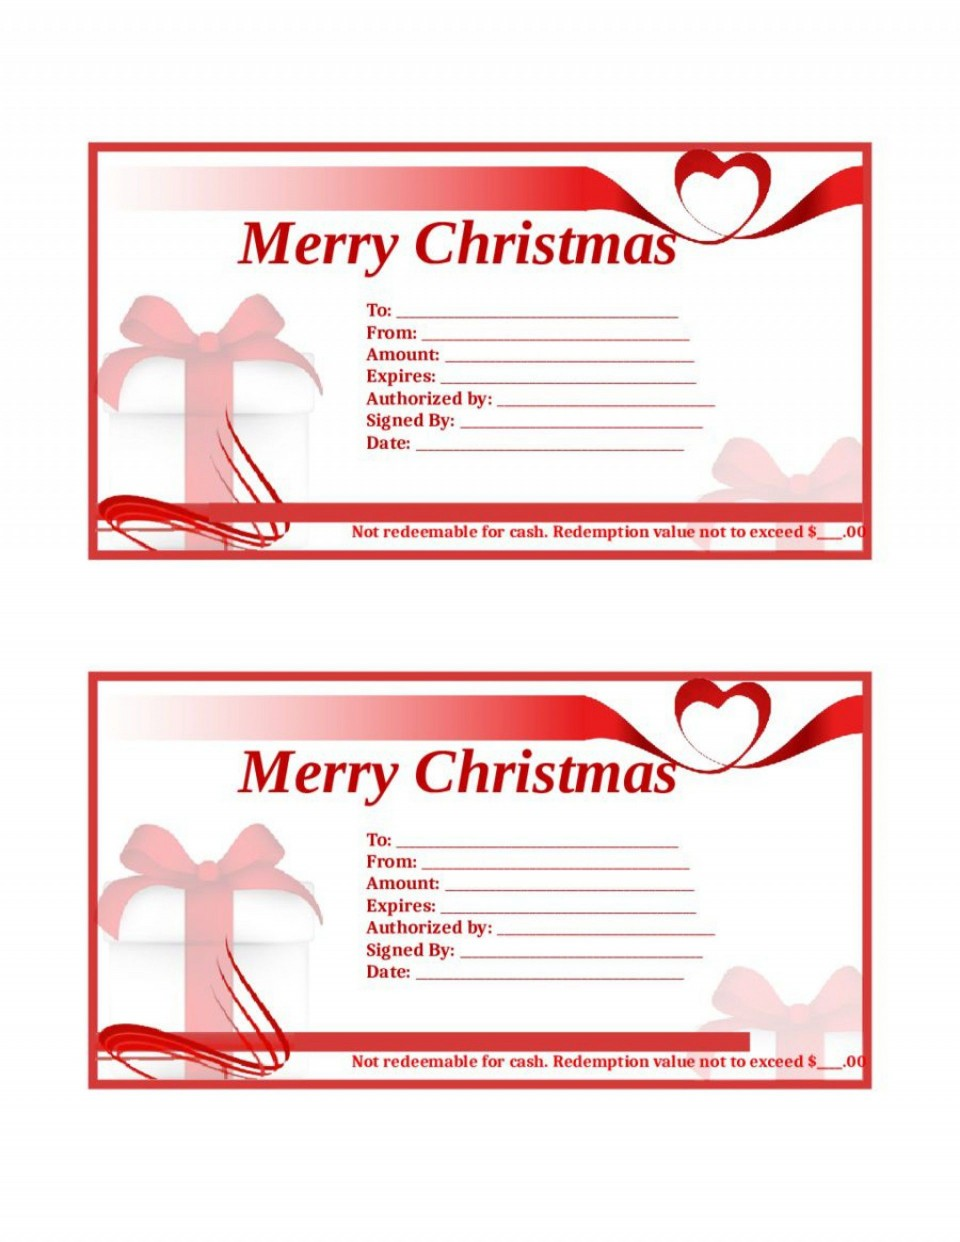 002 Surprising Template For Christma Gift Certificate Free Sample  Voucher Uk Editable Download Microsoft Word960